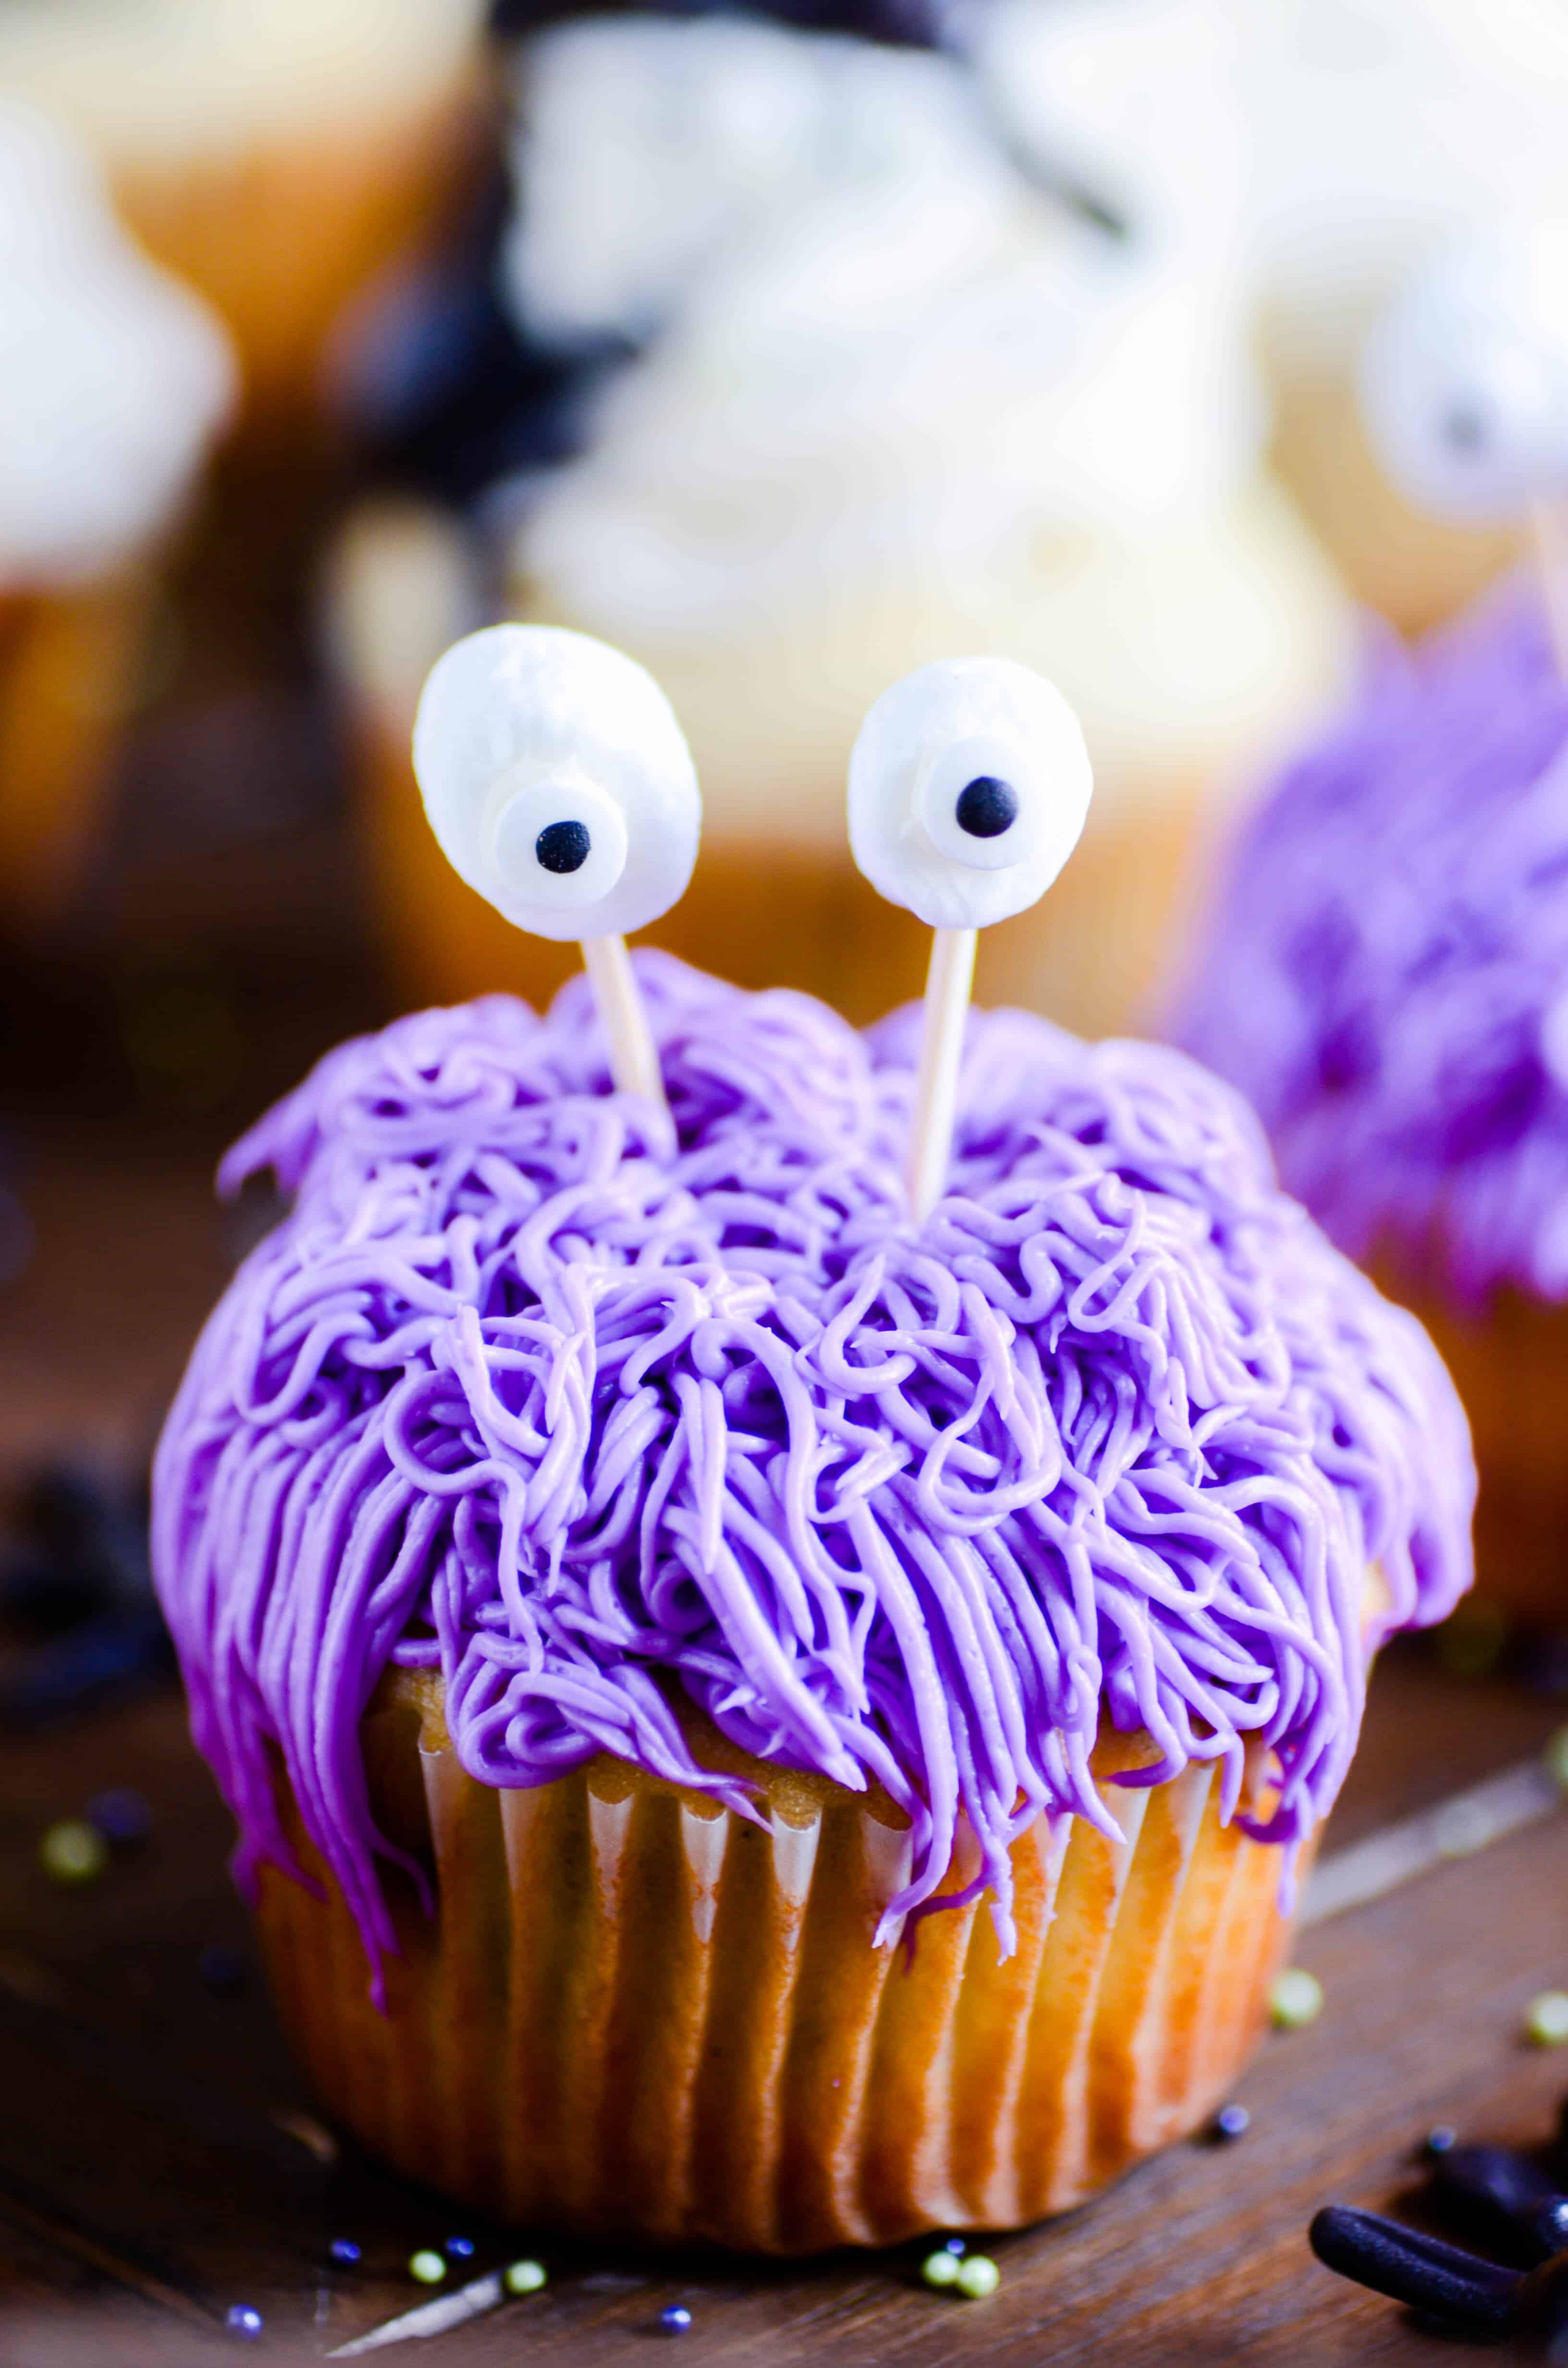 How to make super cute and easy cupcakes for Halloween!